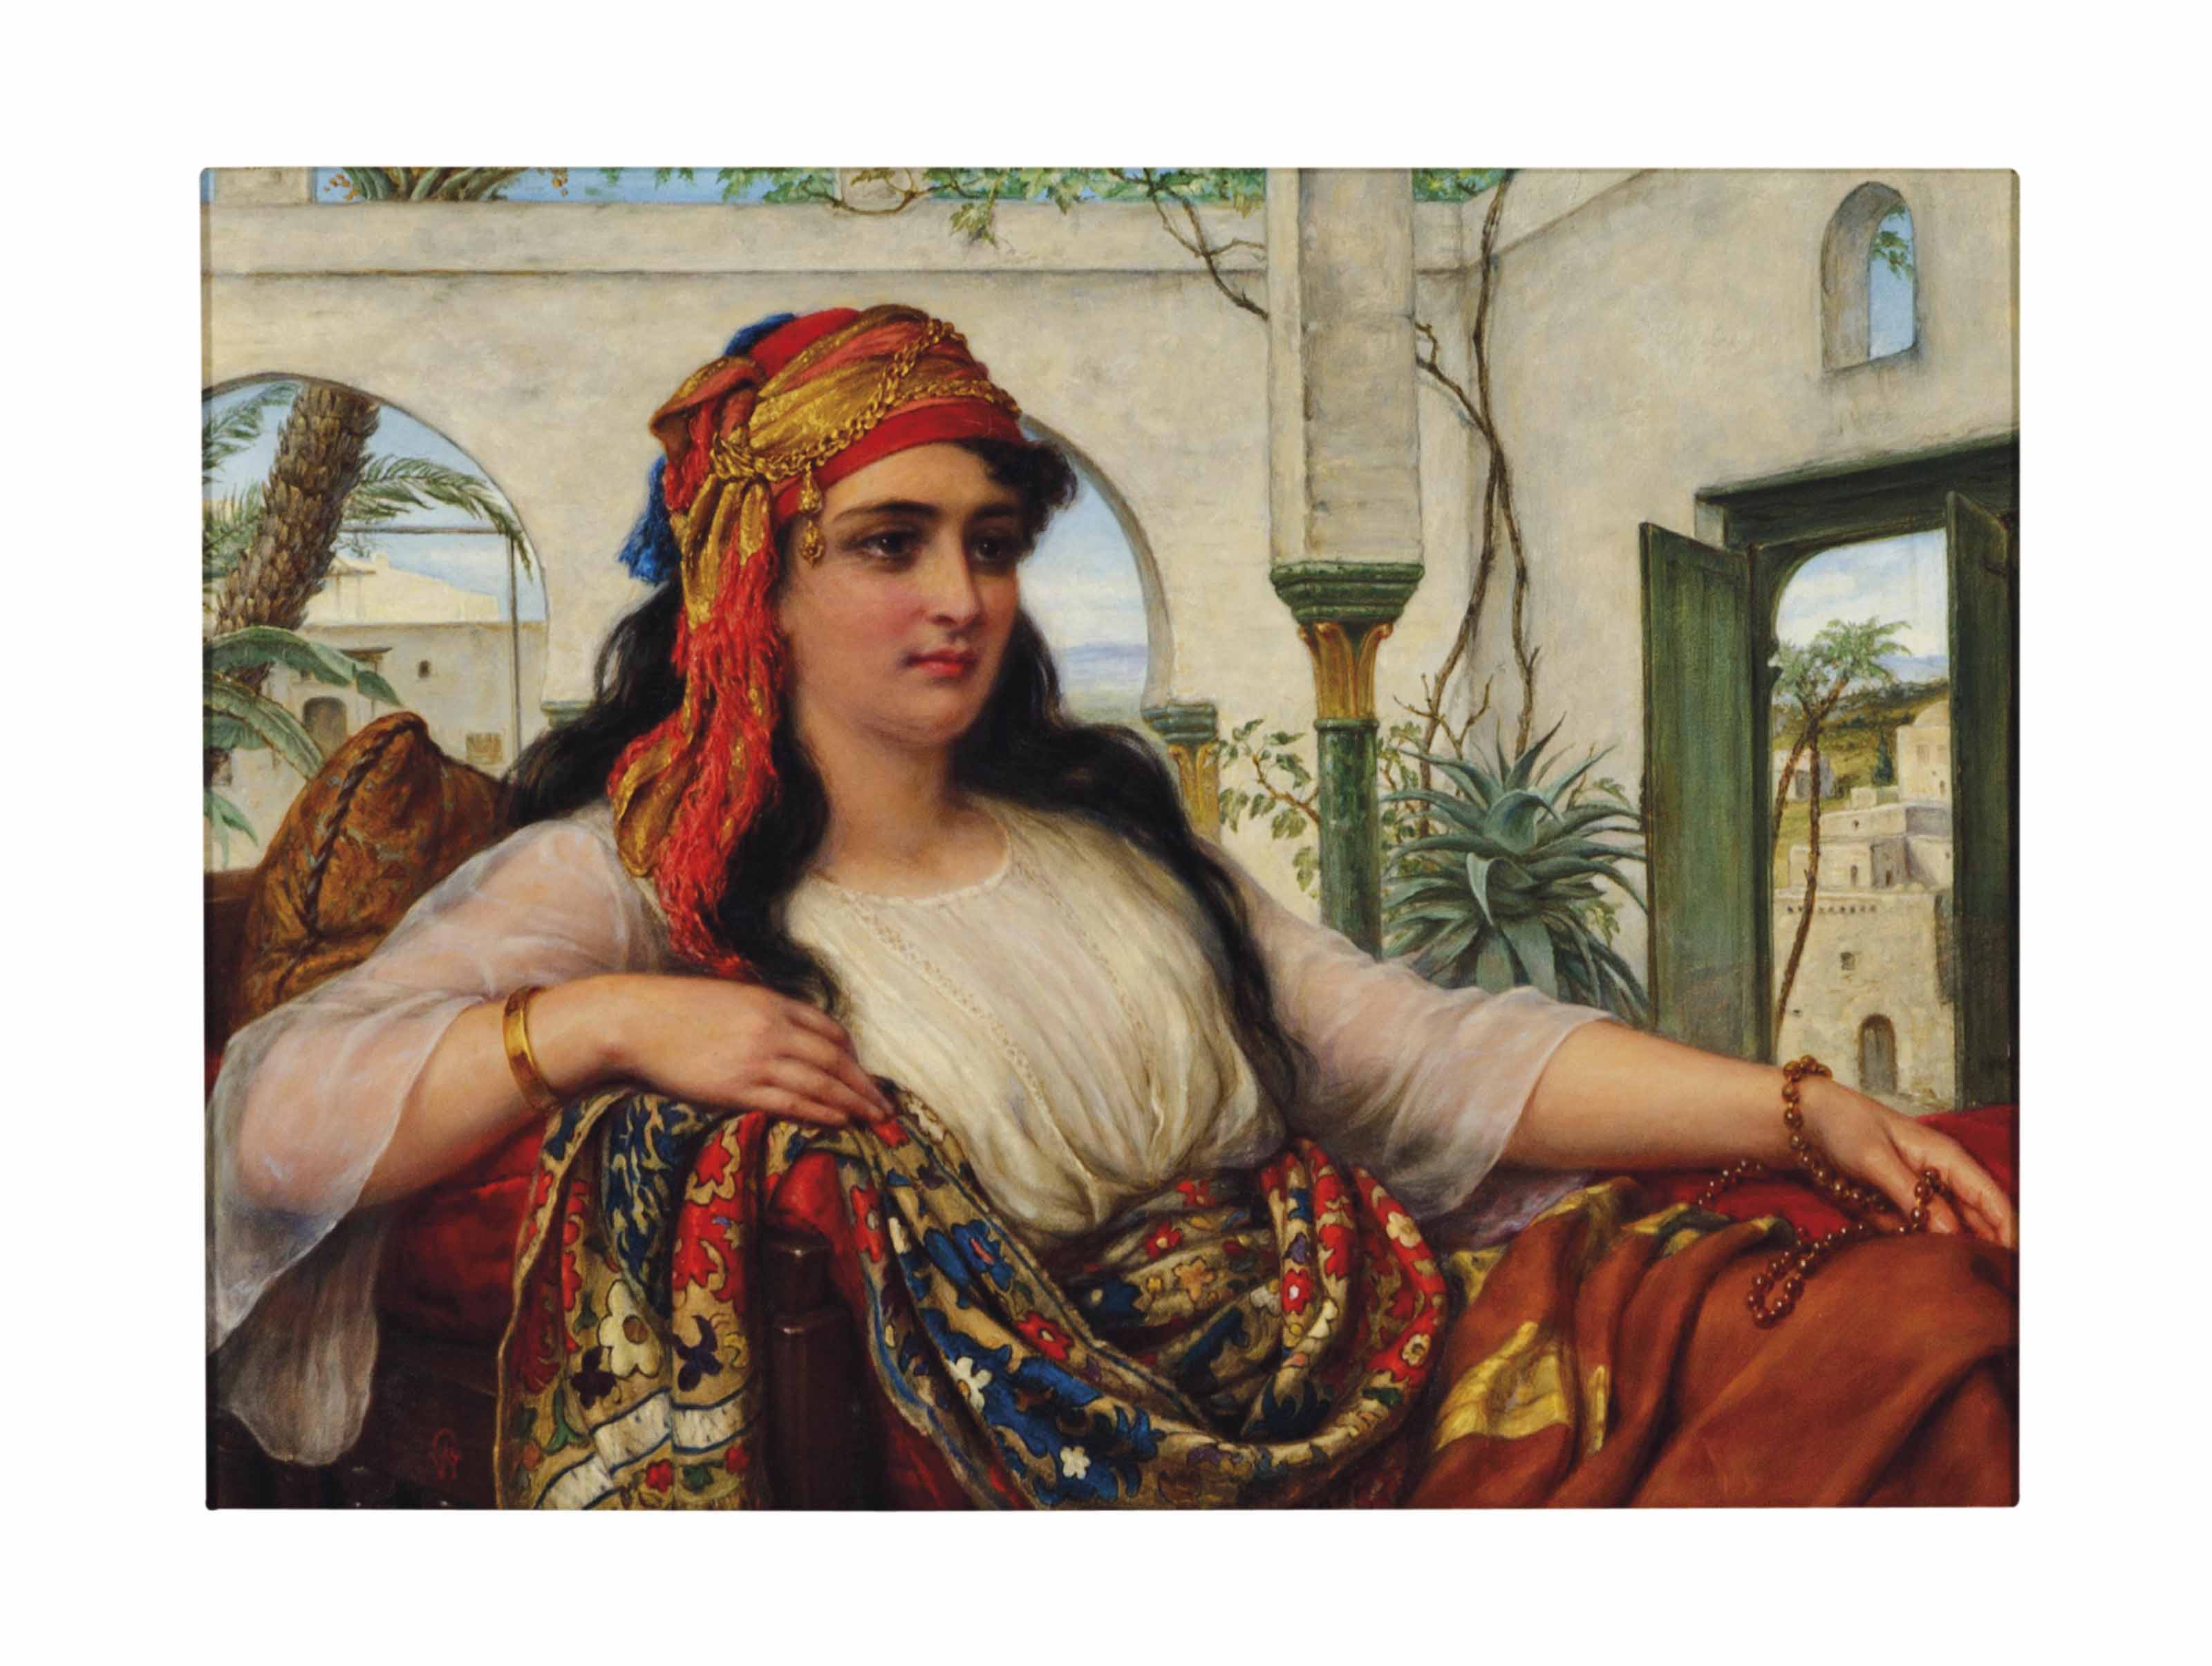 Reclining Harem Woman